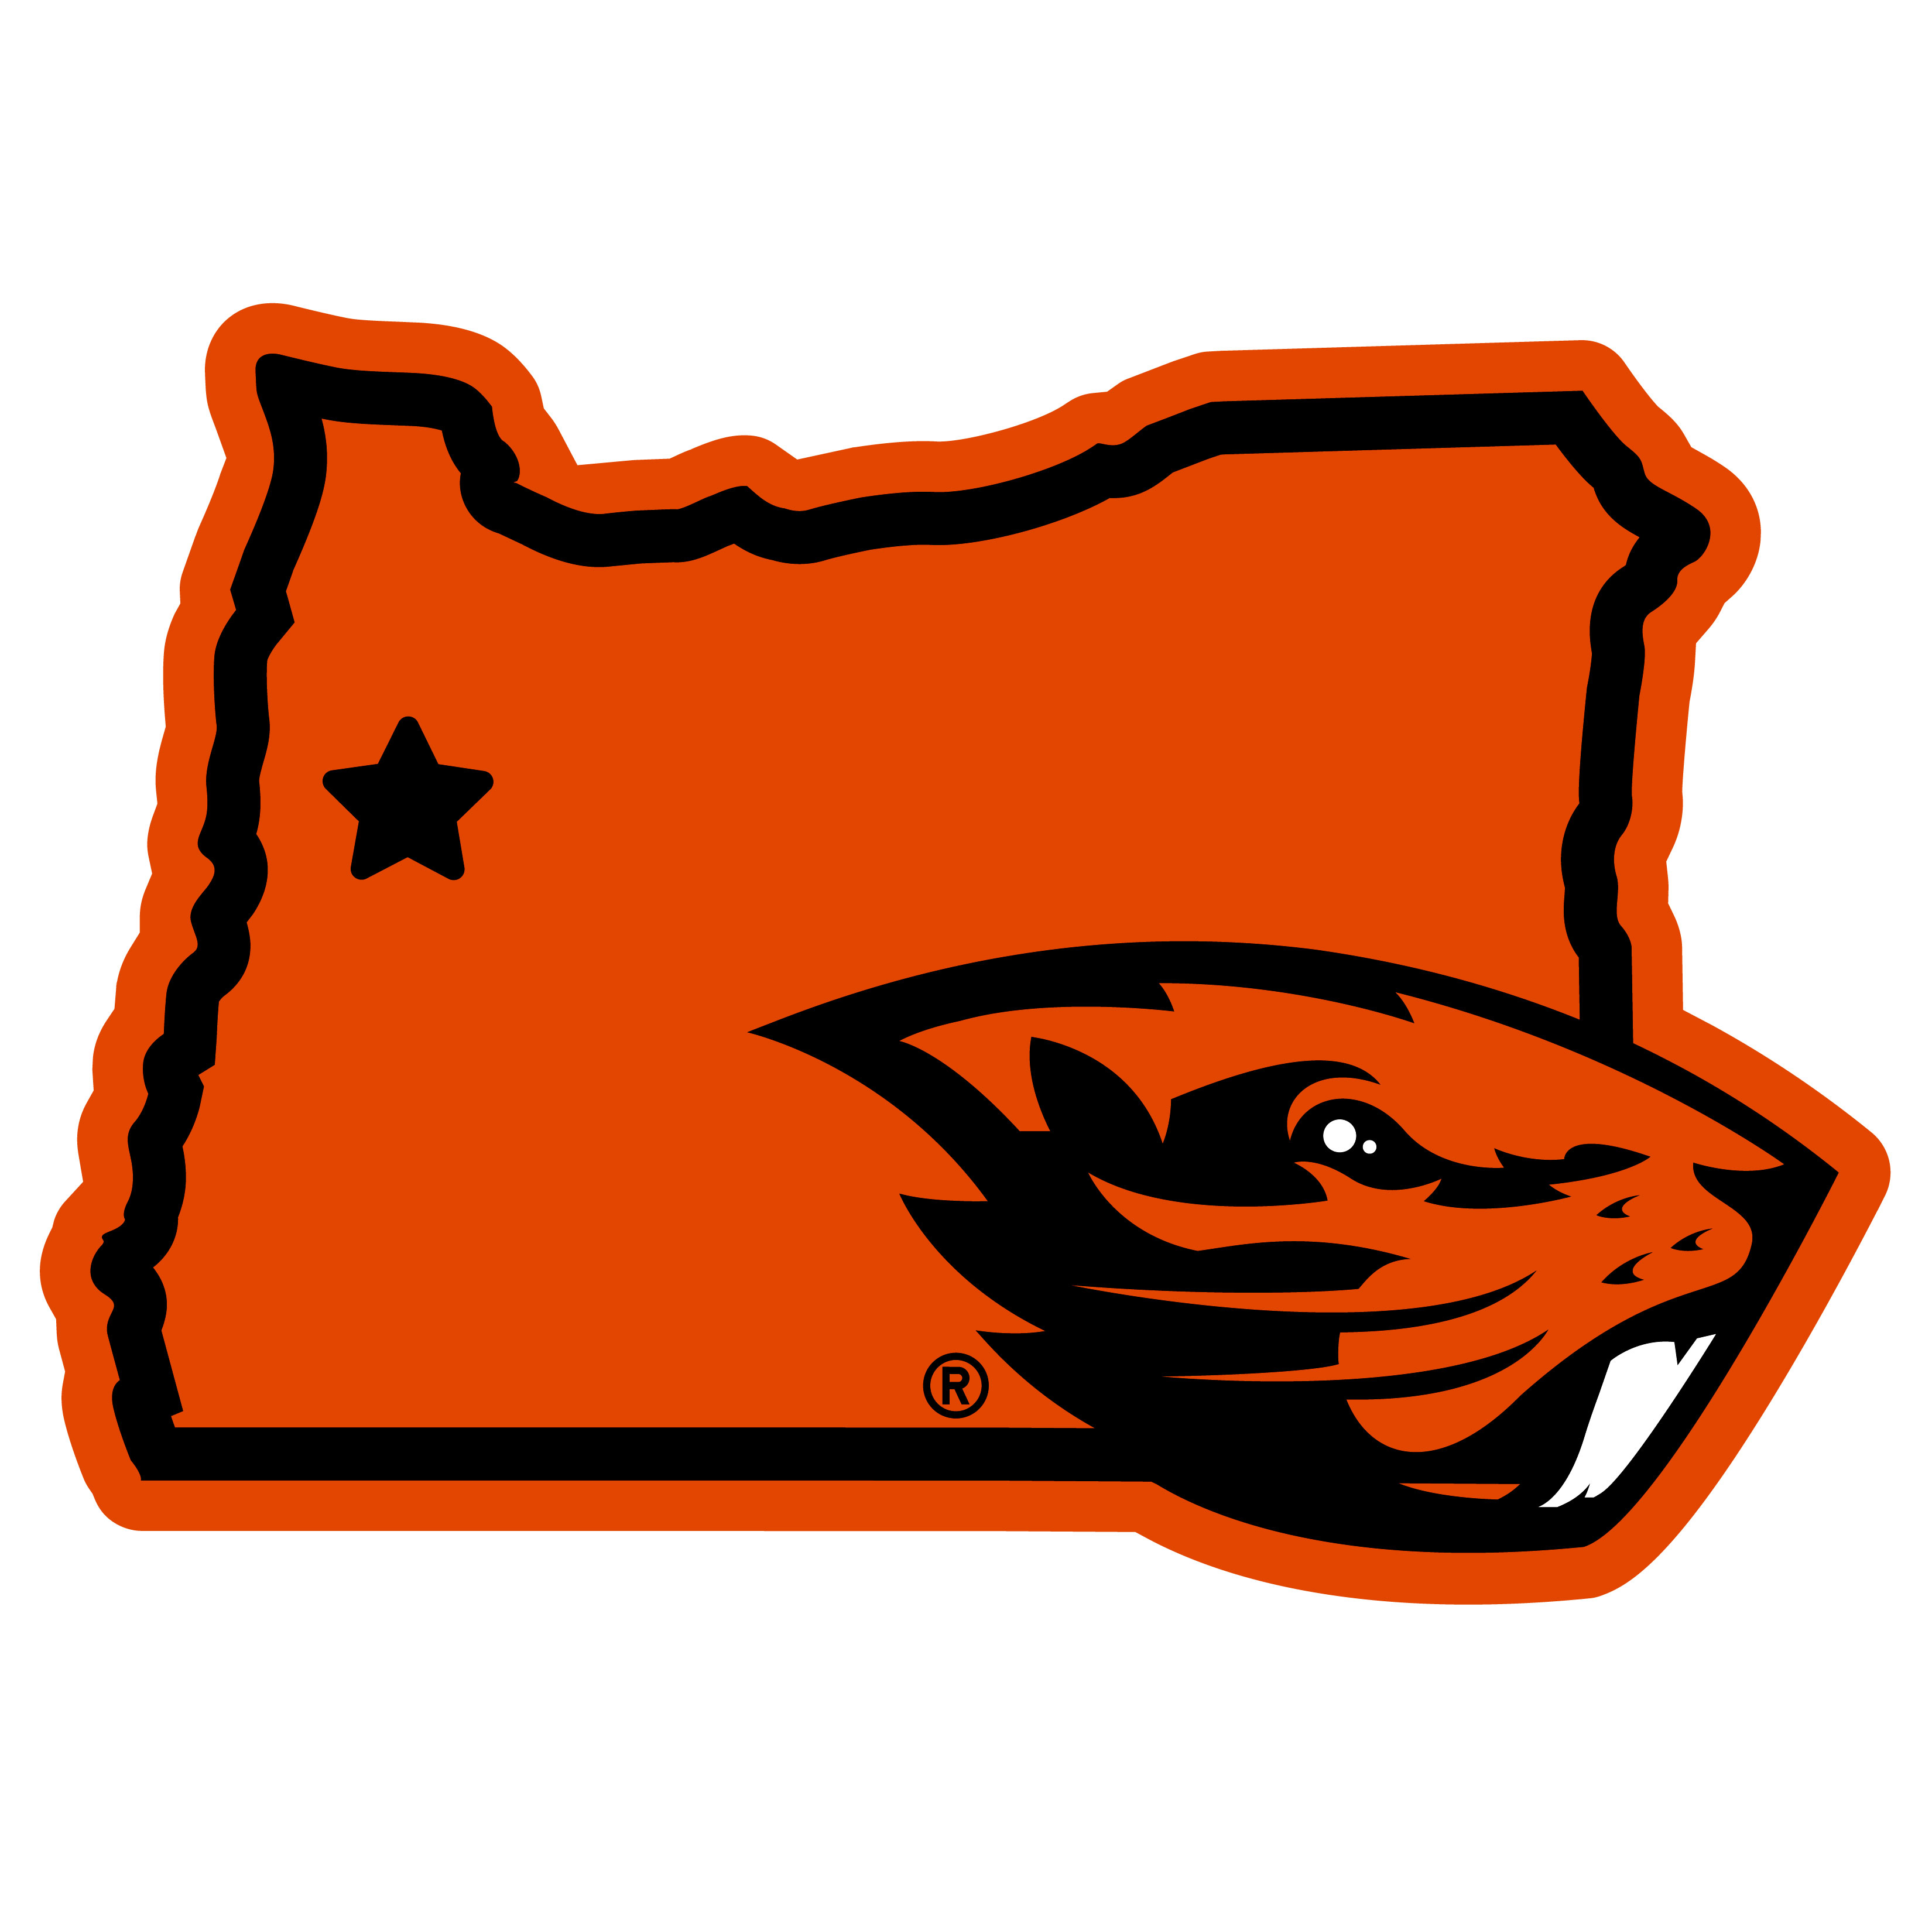 Oregon St. Beavers Home State 11 Inch Magnet - Whether you are caravaning to the game or having a tailgate party make sure you car is wearing its fan gear with our extra large, 11 inch Oregon St. Beavers home state magnets. These striking magnets can be easily placed on for game day and removed without he residue left by decals. The design features a bright state outline with the location of the team highlighted with a football and a large team logo.